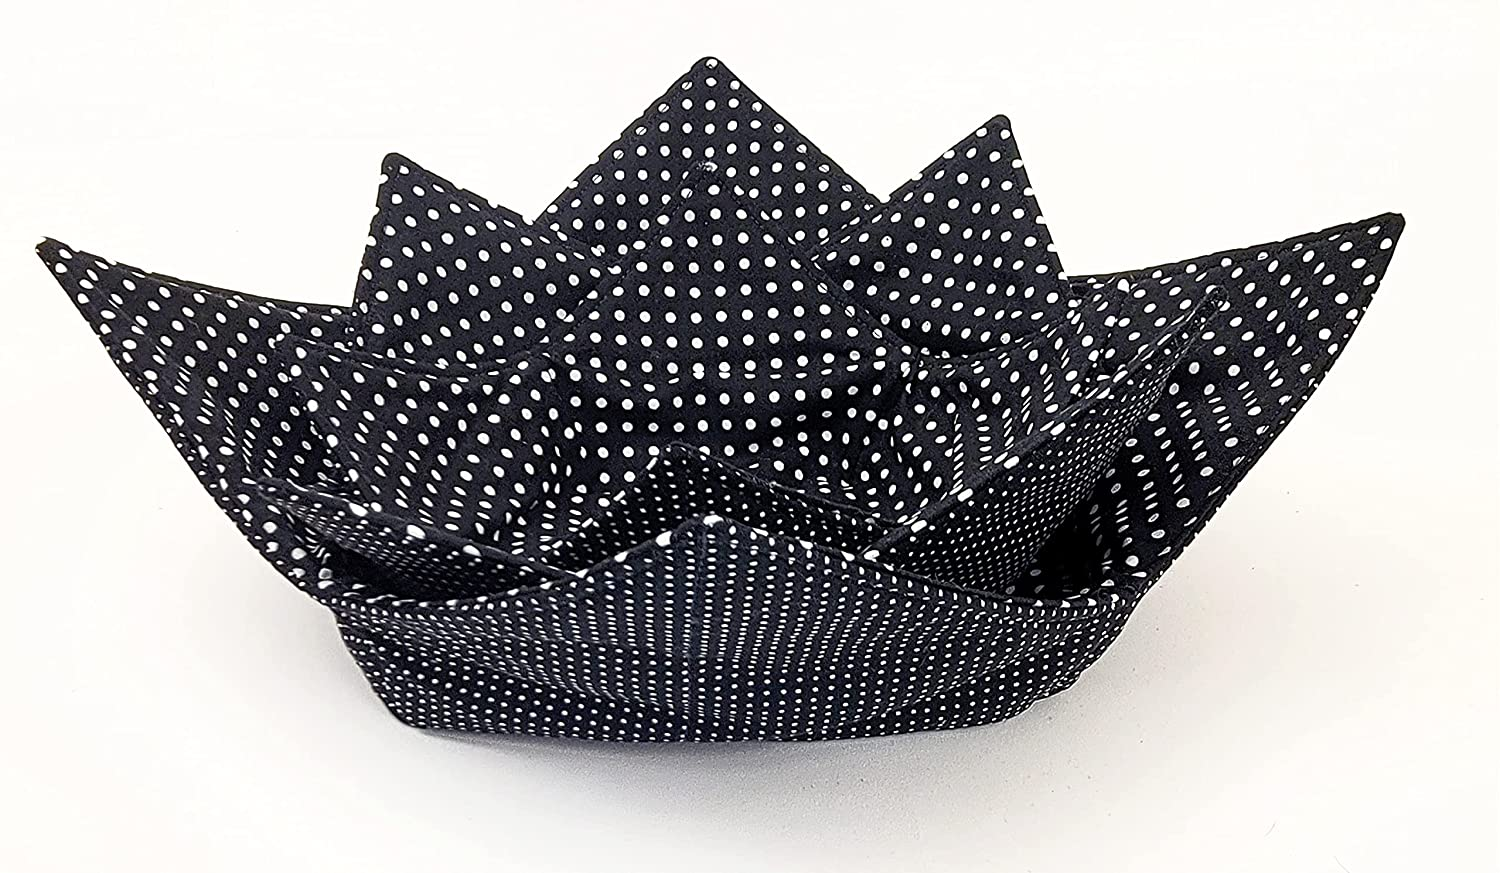 2021new shipping free Microwave Bowl Cozy 3 pc Set Polka 70% OFF Outlet Reversible Dots White Black H